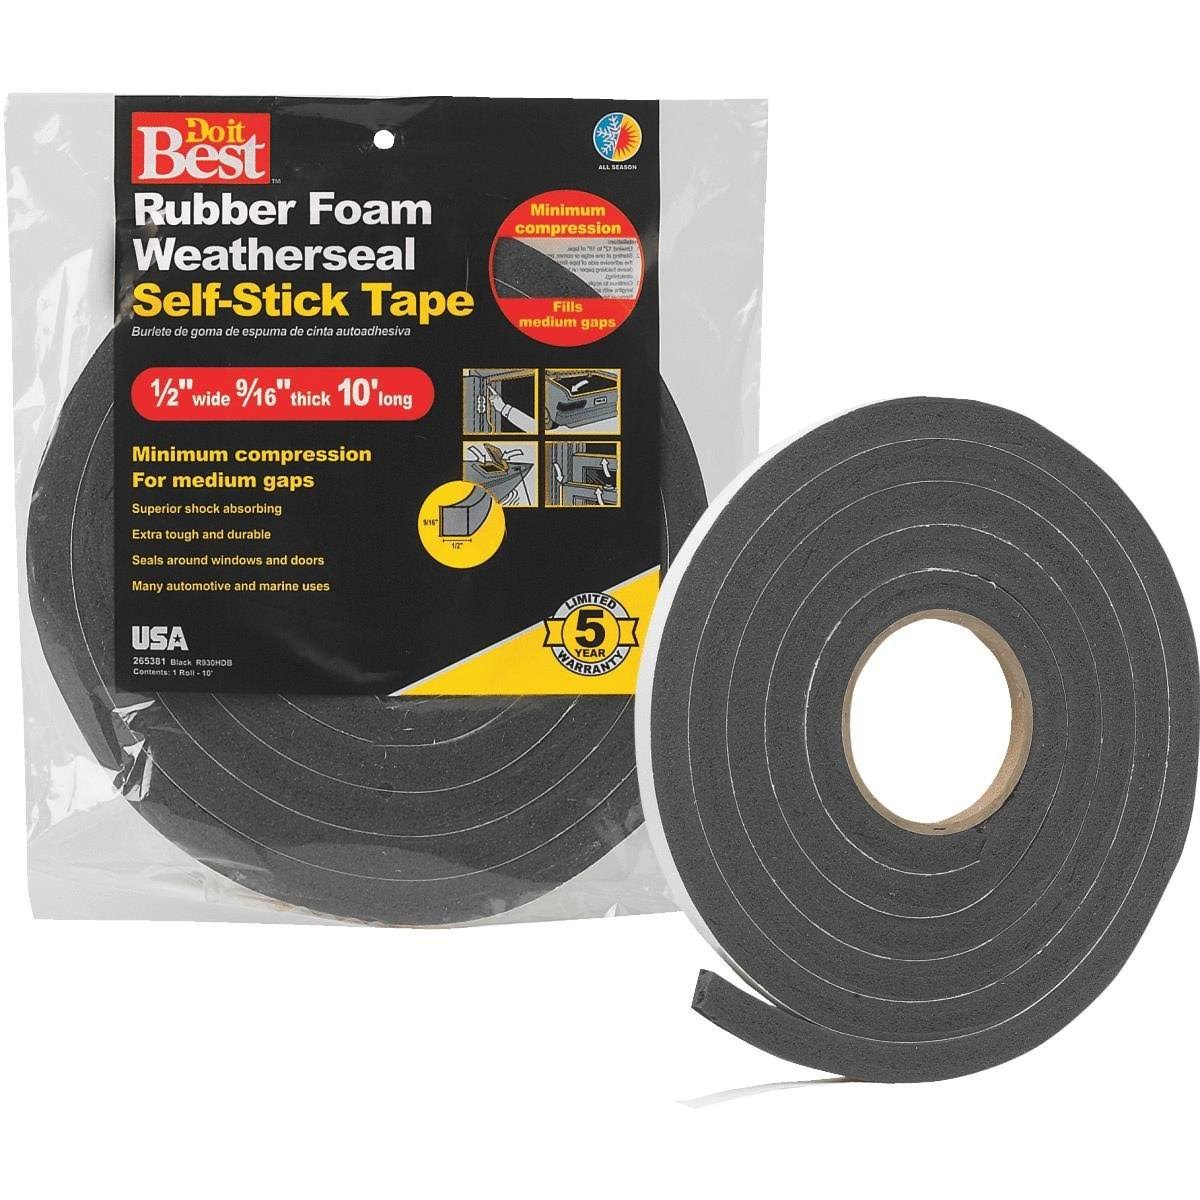 "Sponge Rubber Foam Weatherseal Tape - 1/2"" X 9/16"" X 10'"